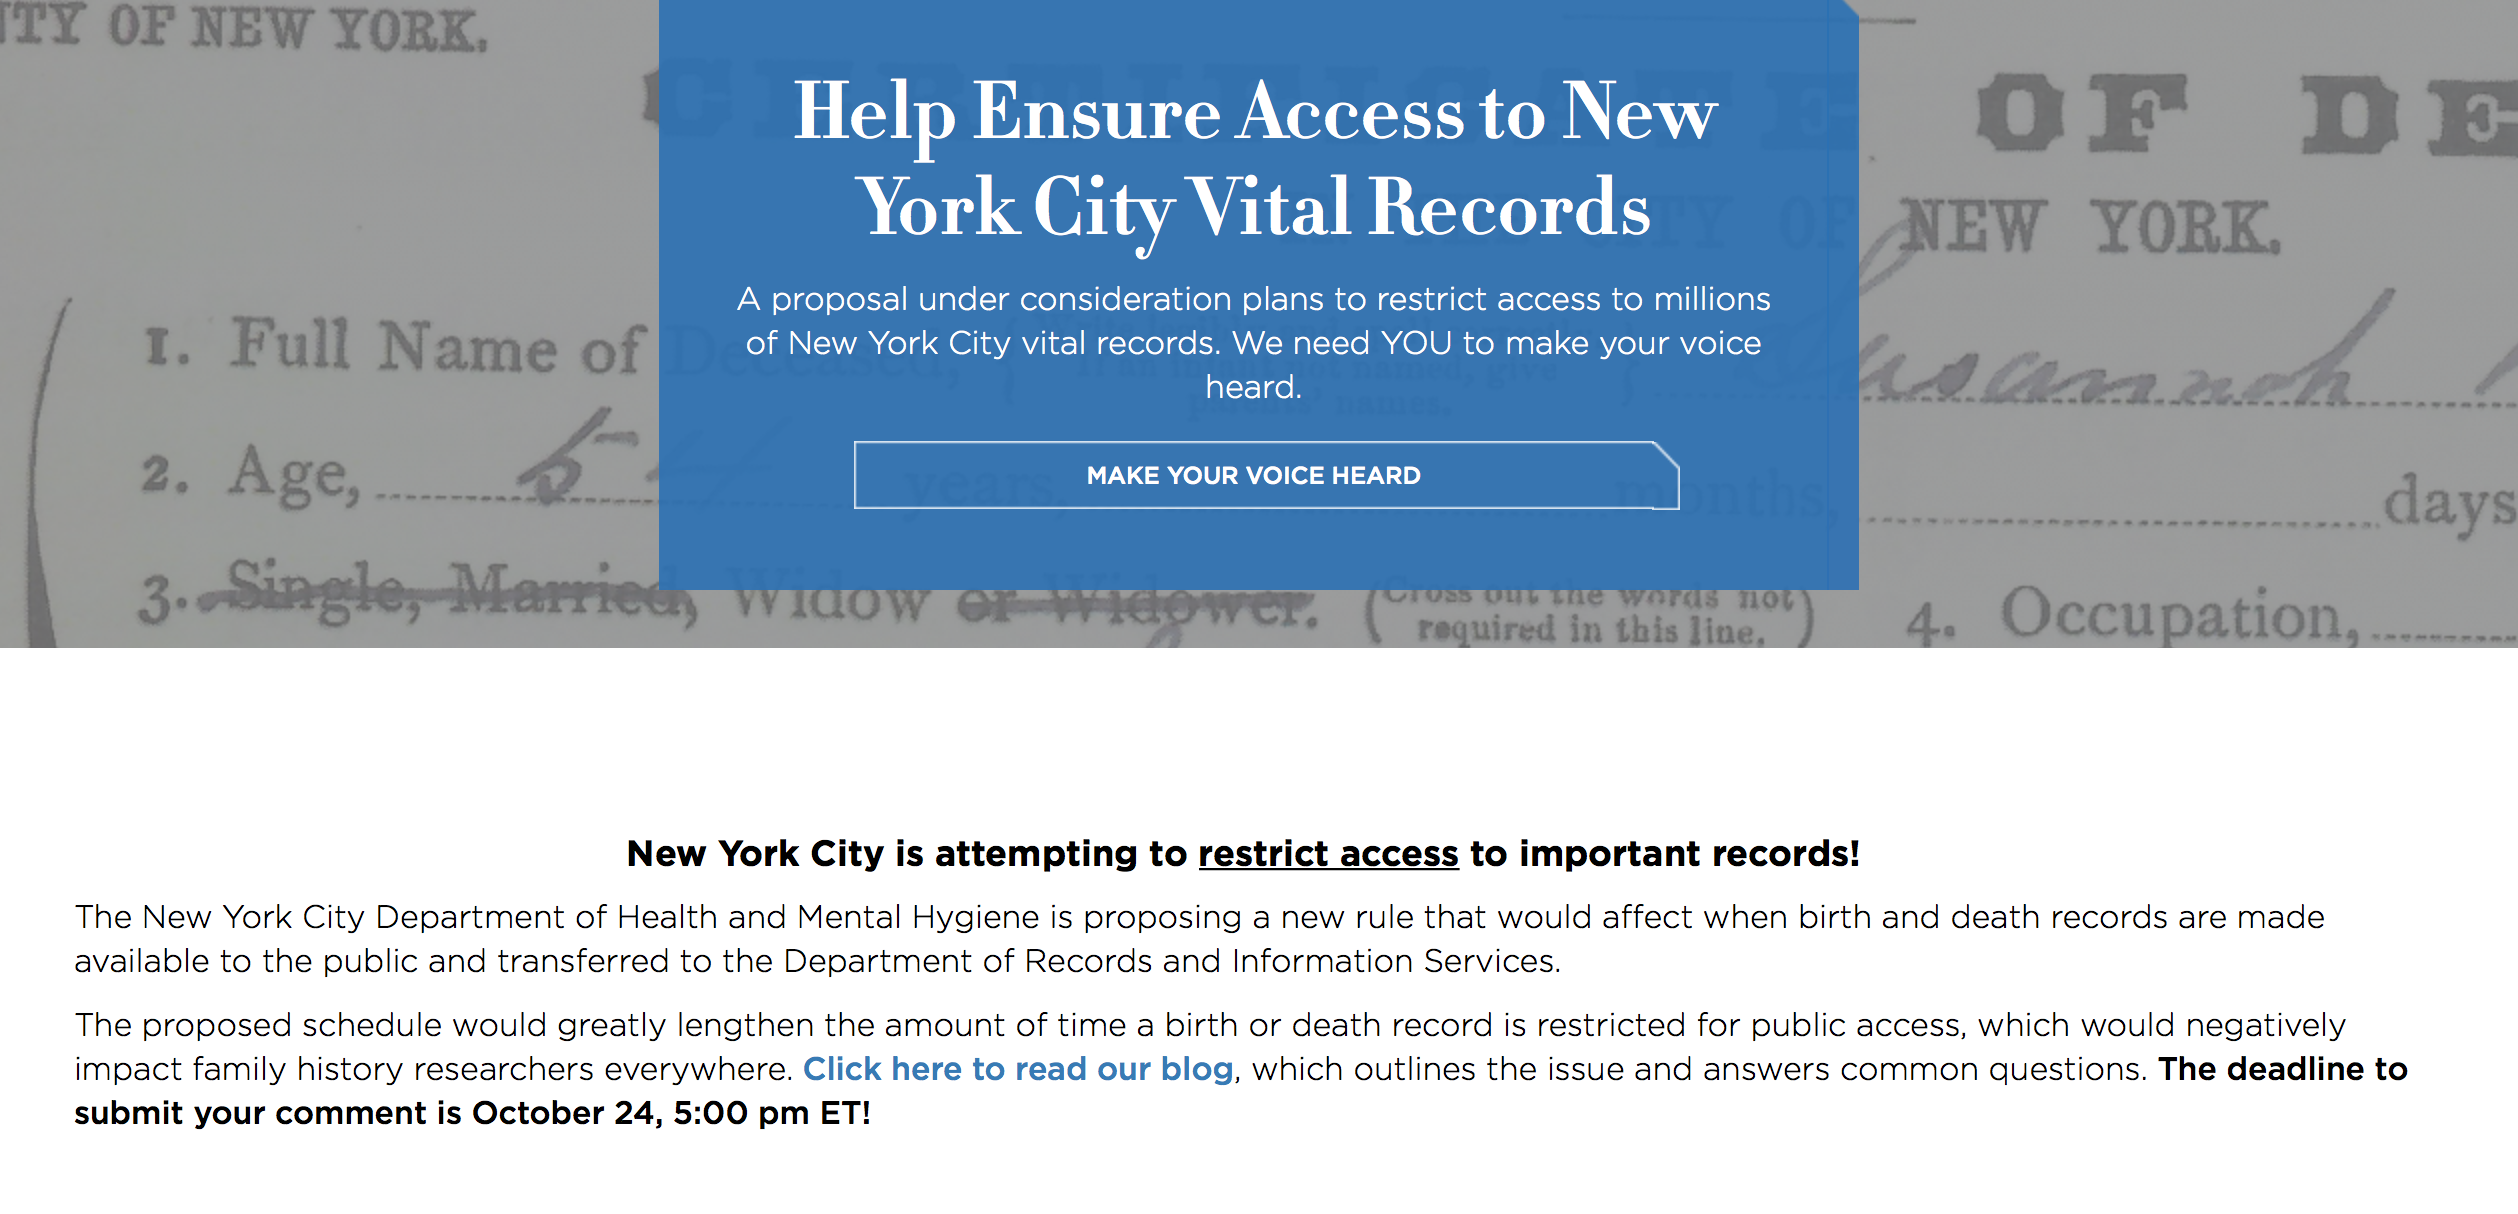 Help Save Access To New York City Vital Records My Roots My Blog